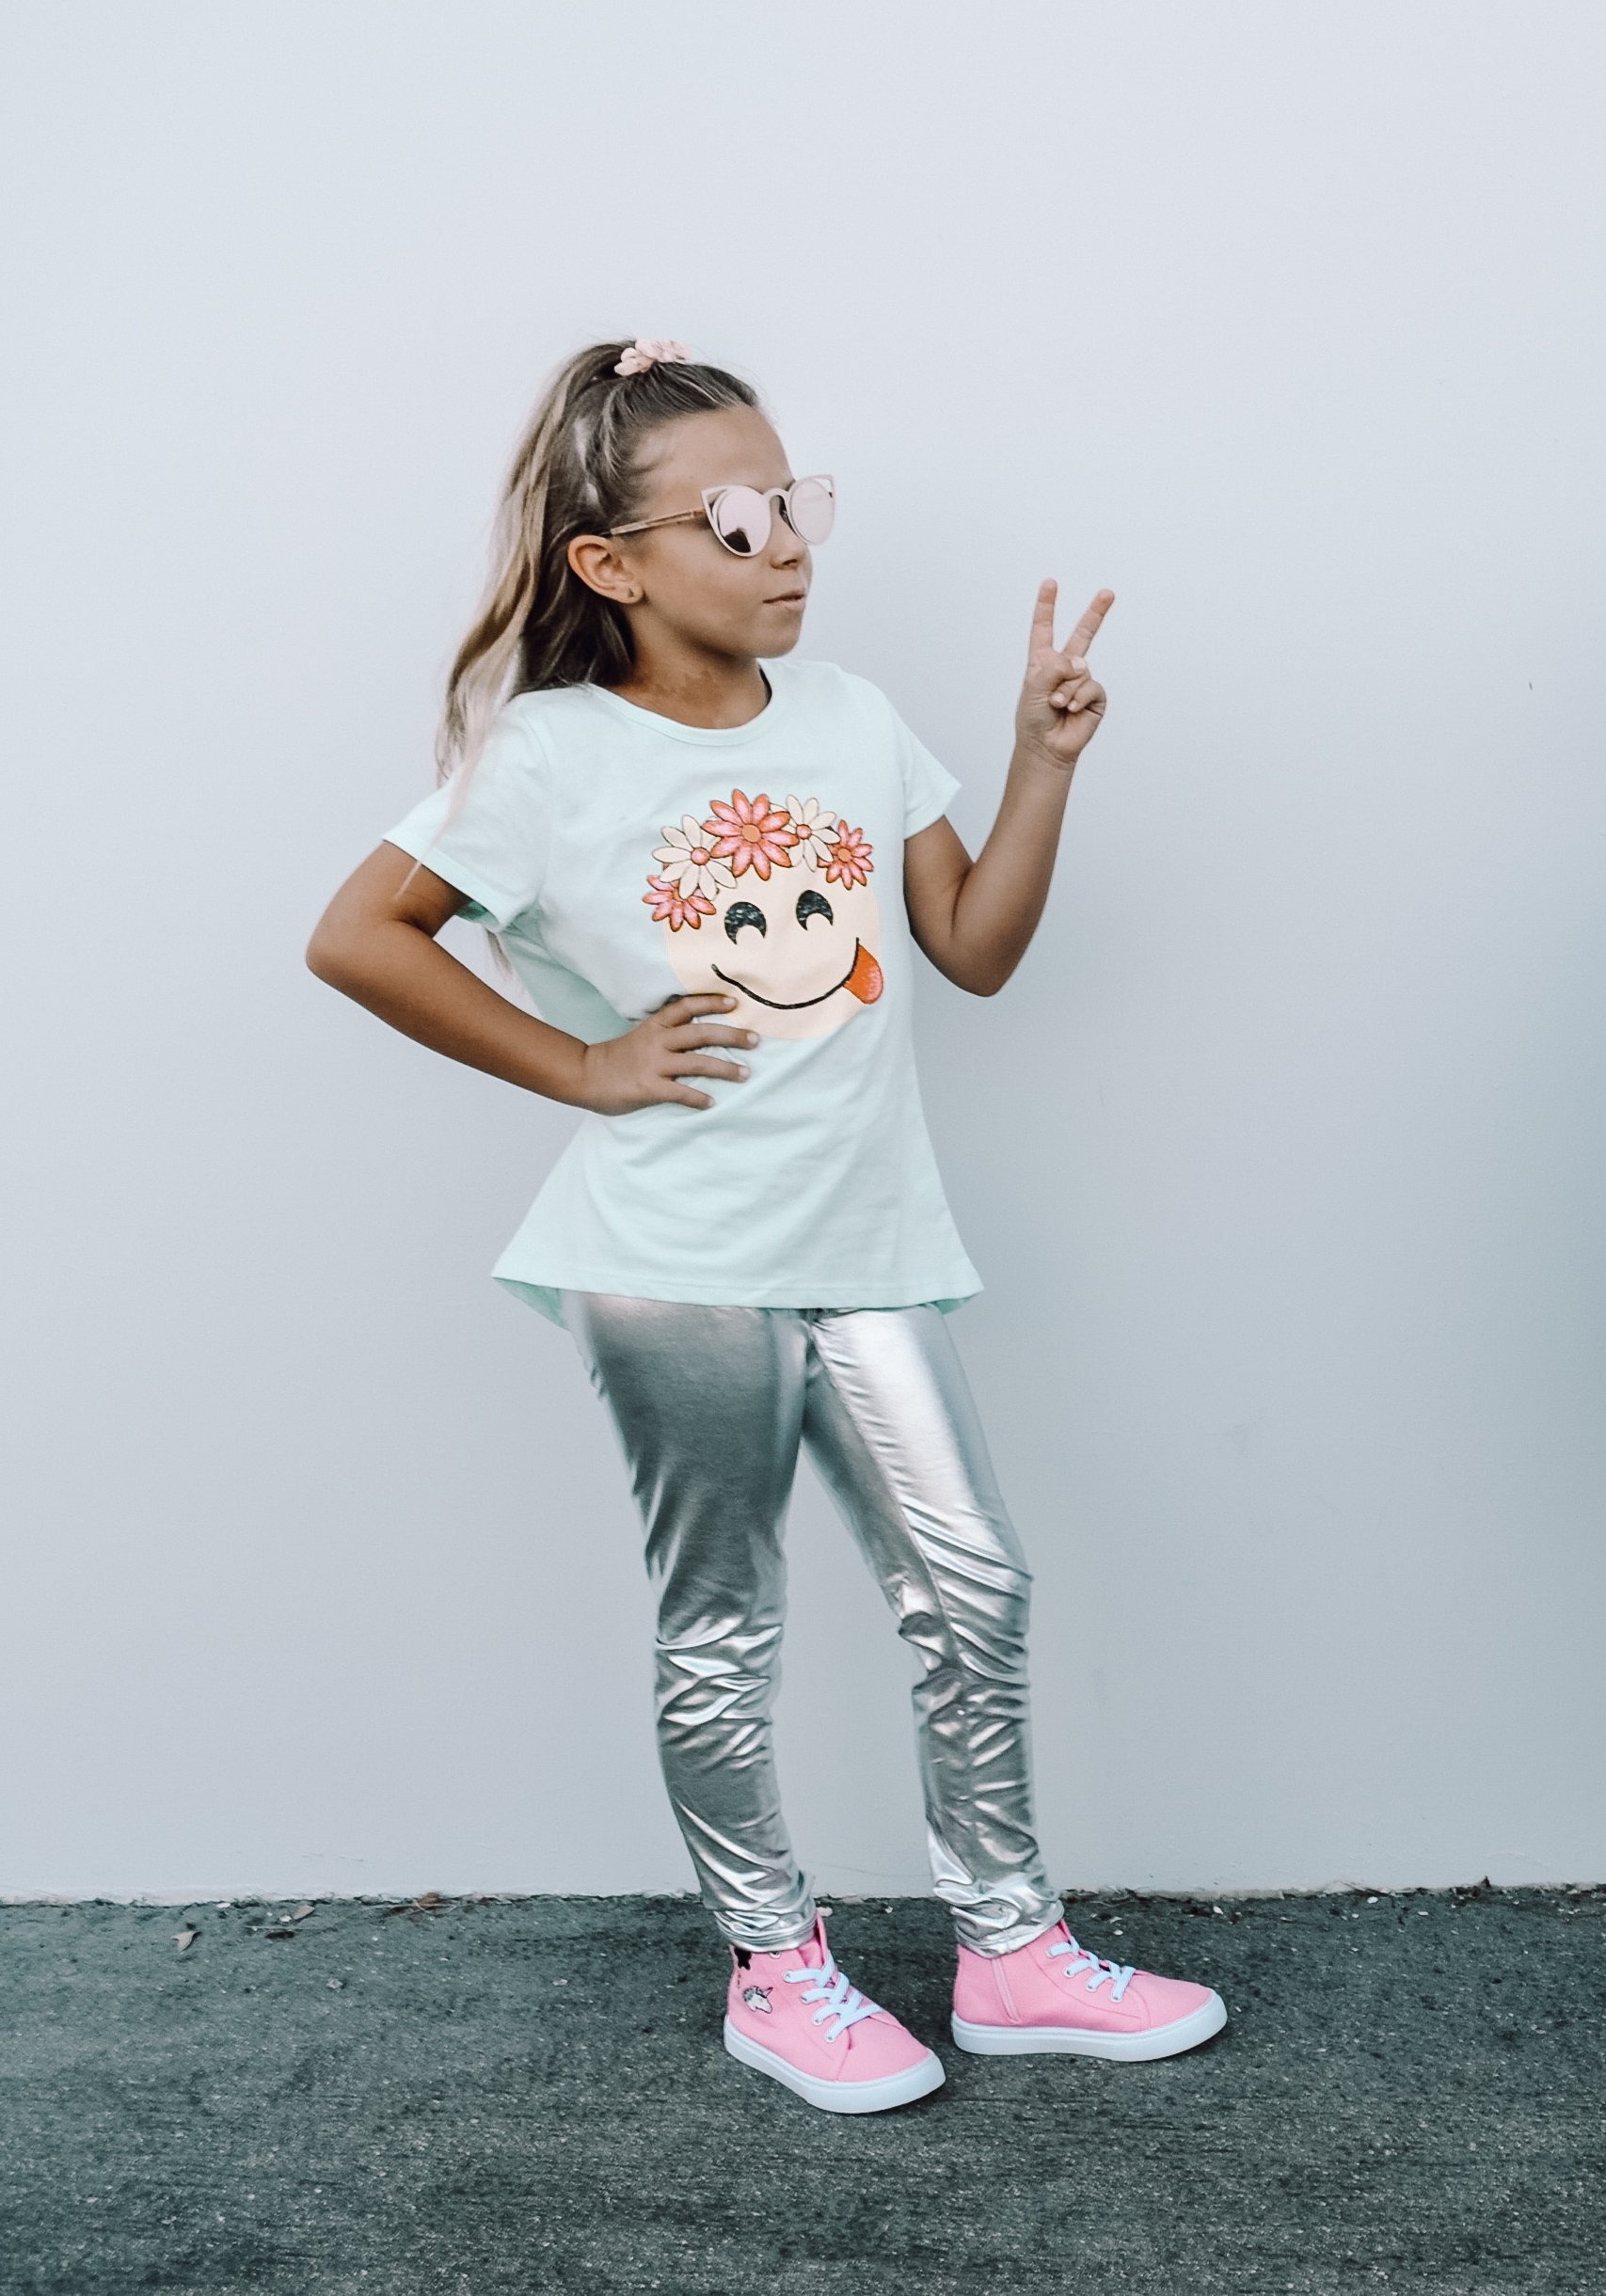 BACK TO SCHOOL WITH FABKIDS- Jaclyn De Leon Style + KID STYLE + HIGH TOPS + SUNGLASSES + KID LIFE + MOM LIFE + GETTING READY FOR SCHOOL + CHILDREN SNEAKERS + GRAPHIC TEE + METALLIC LEGGINGS + KIDS FOR REAL + FALL STYLE + SCHOOL OUTFITS